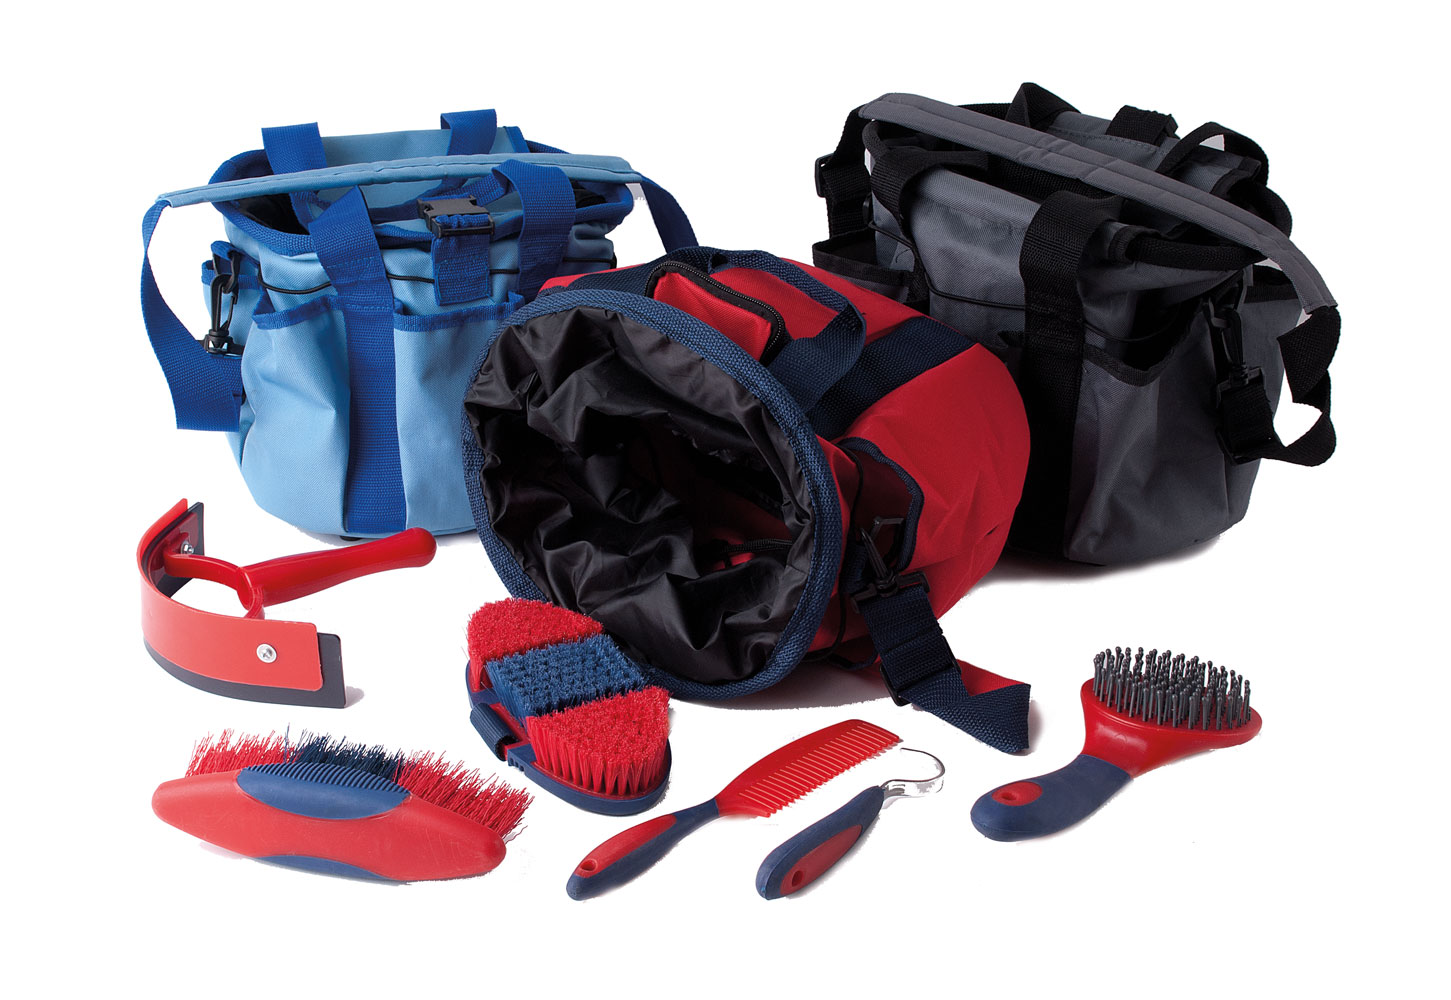 Rhinegold Complete Soft Touch Grooming Kit with Bag - Luggage Range